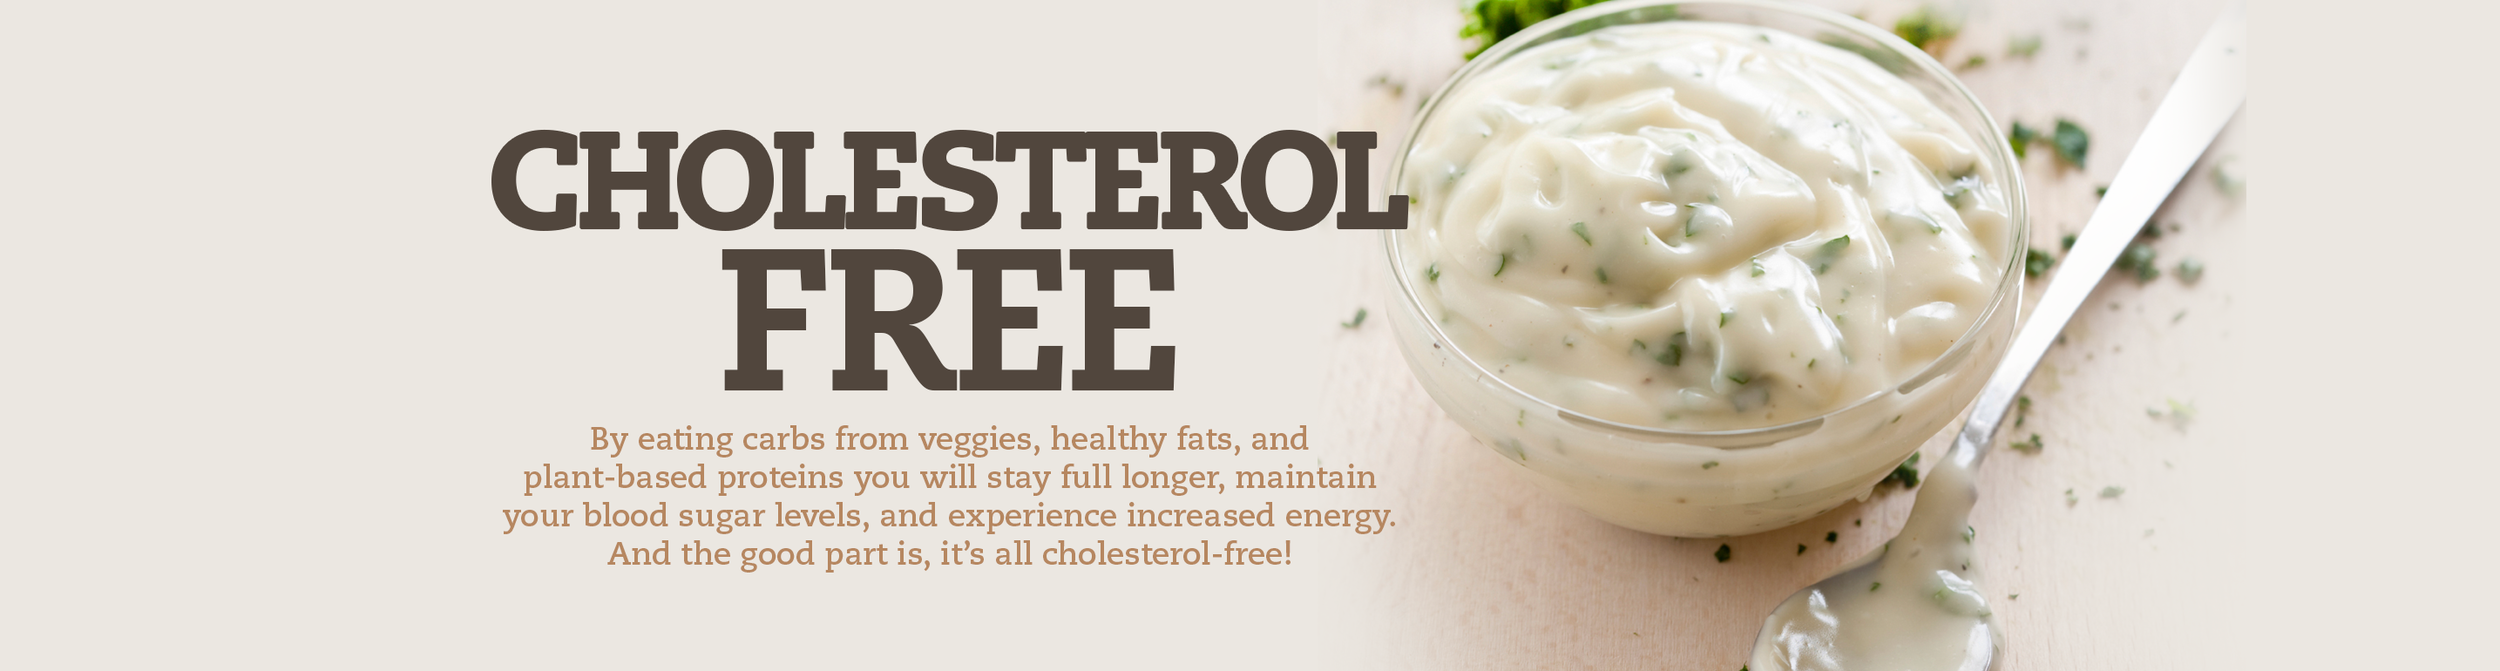 website_01-AboutUs_cholesterol-free.png